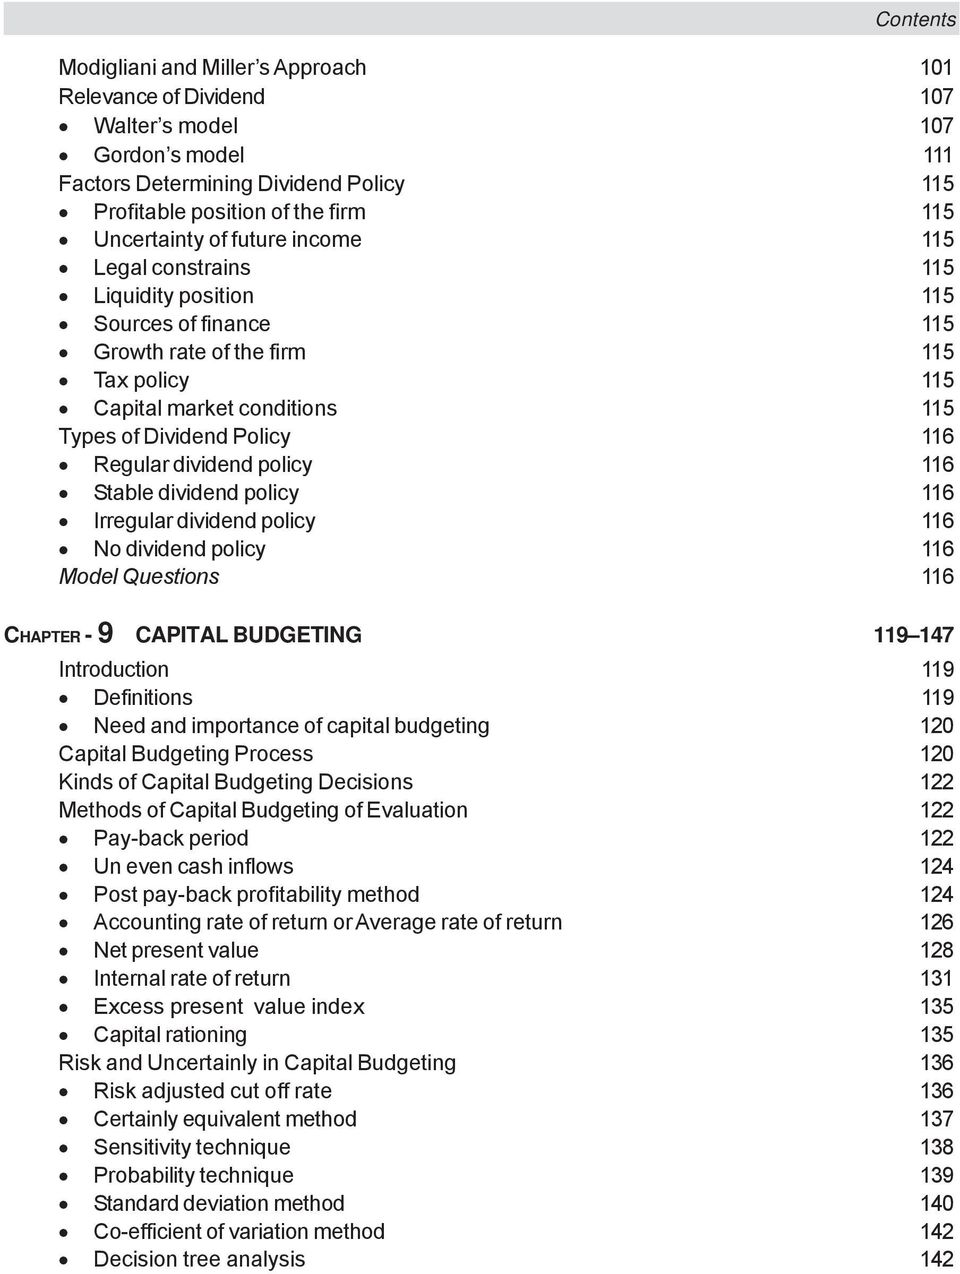 types and sources of risk in capital budgeting decision Risk considerations political risk, monetary risk, access to cash flows, economic stability, and inflation should all be considered in the evaluation process since all are hidden costs in the capital budgeting process.